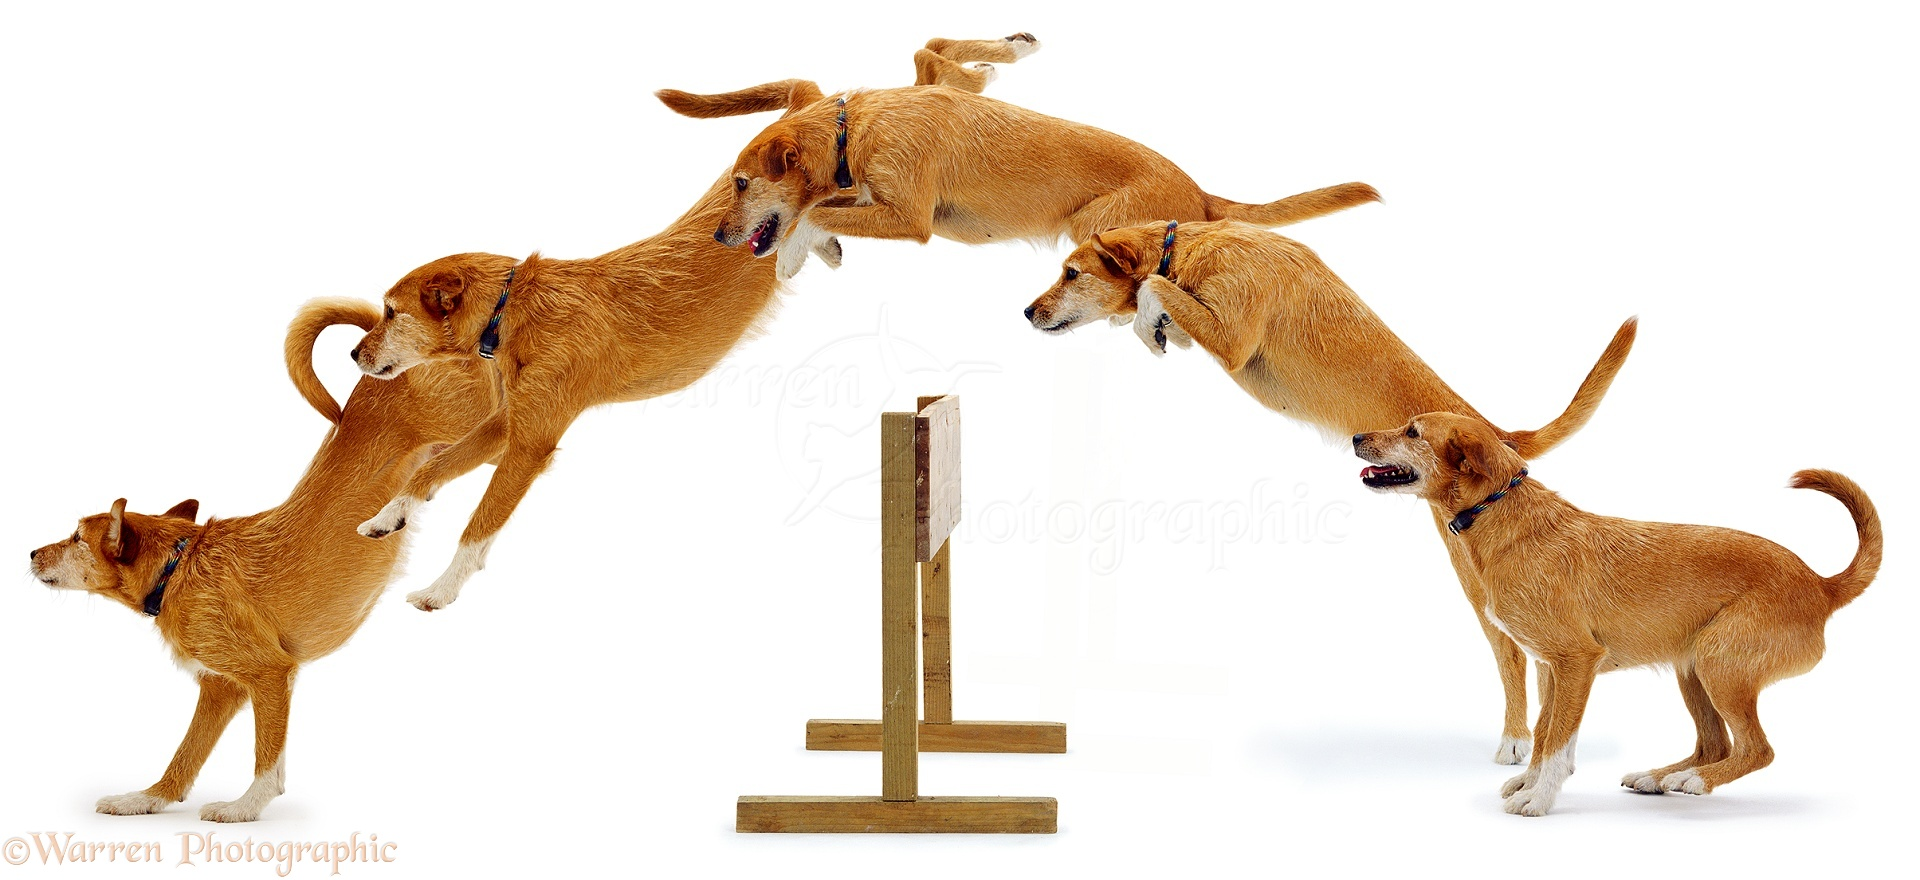 01129-Dog-jumping-multiple-image-white-b